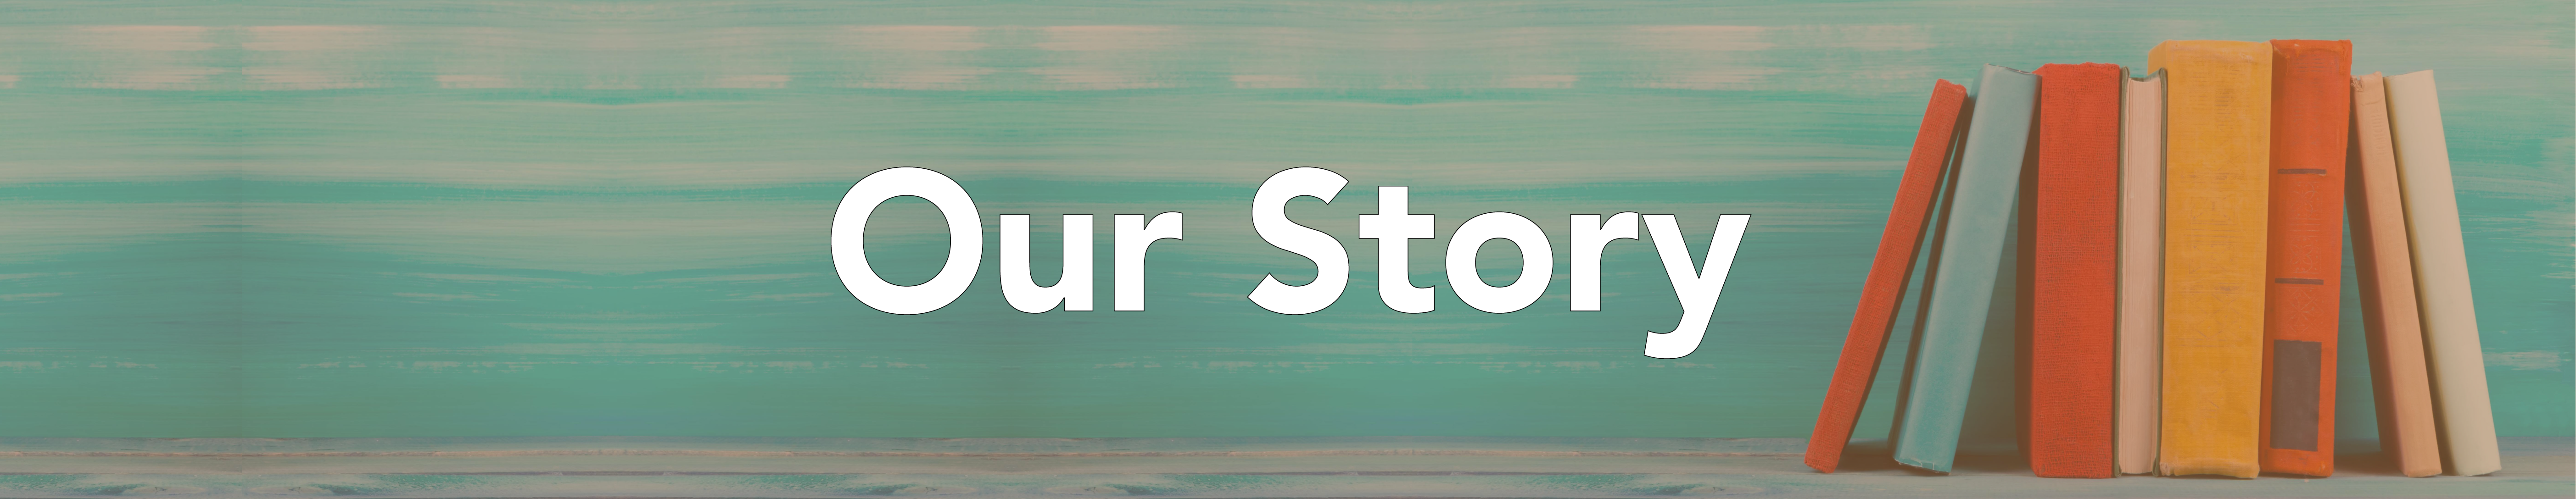 Our Story our story banner 01